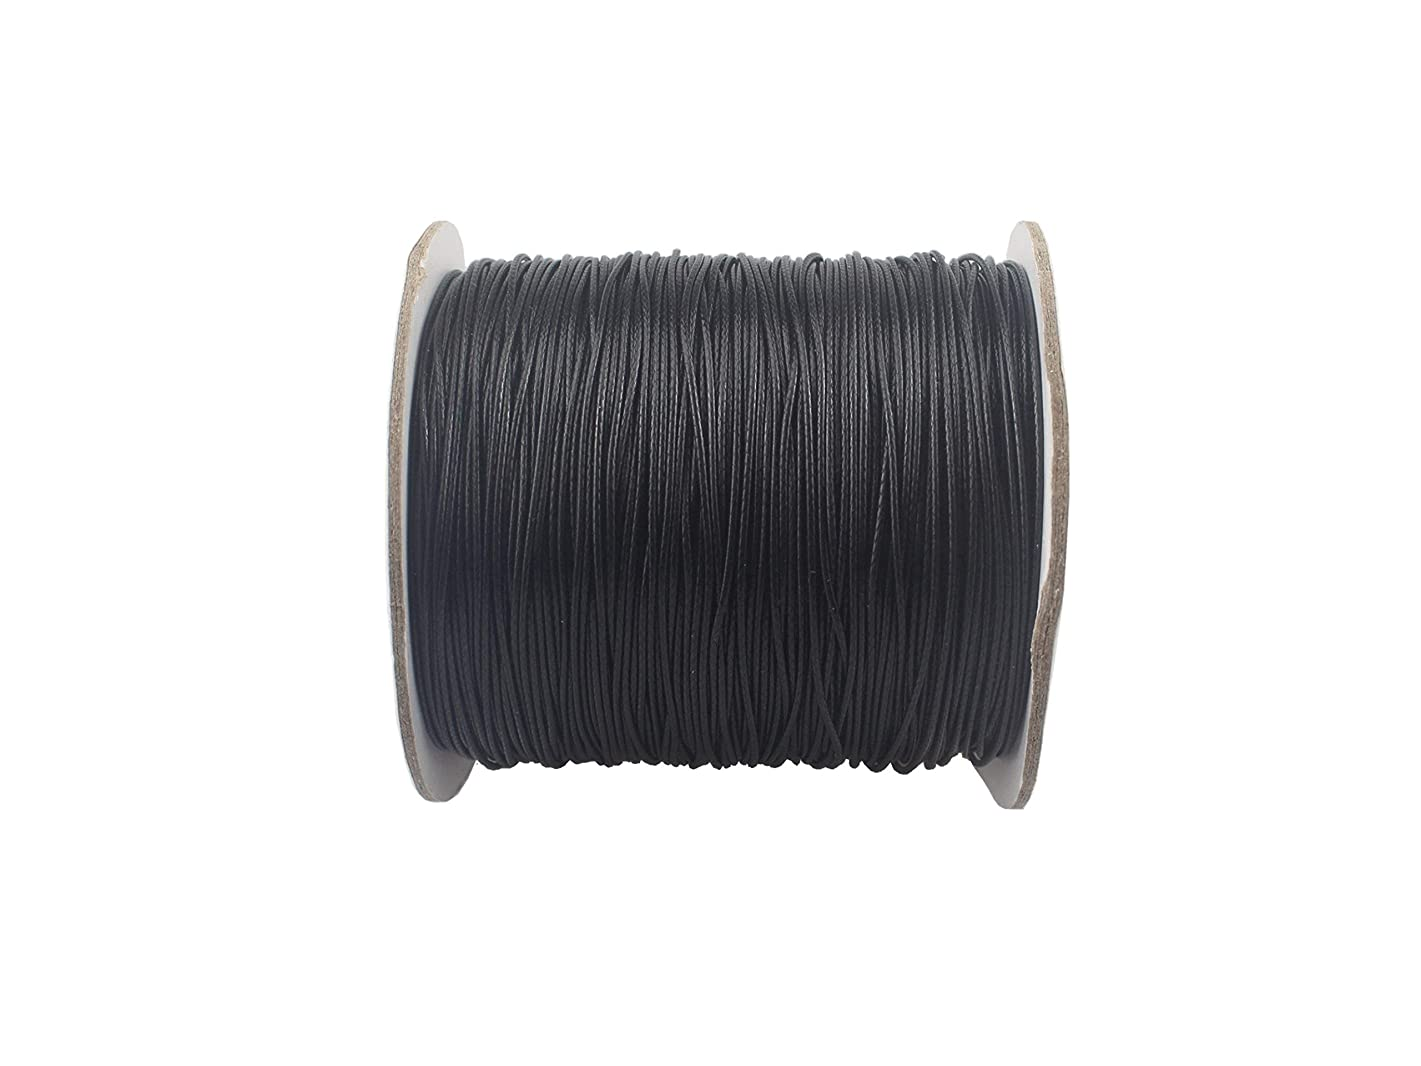 QIANHAILIZZ 150 Yards 0.5 mm Waxed Jewelry Making Cord Waxed Beading String Craft DIY Thread LXX120601805 (Black)